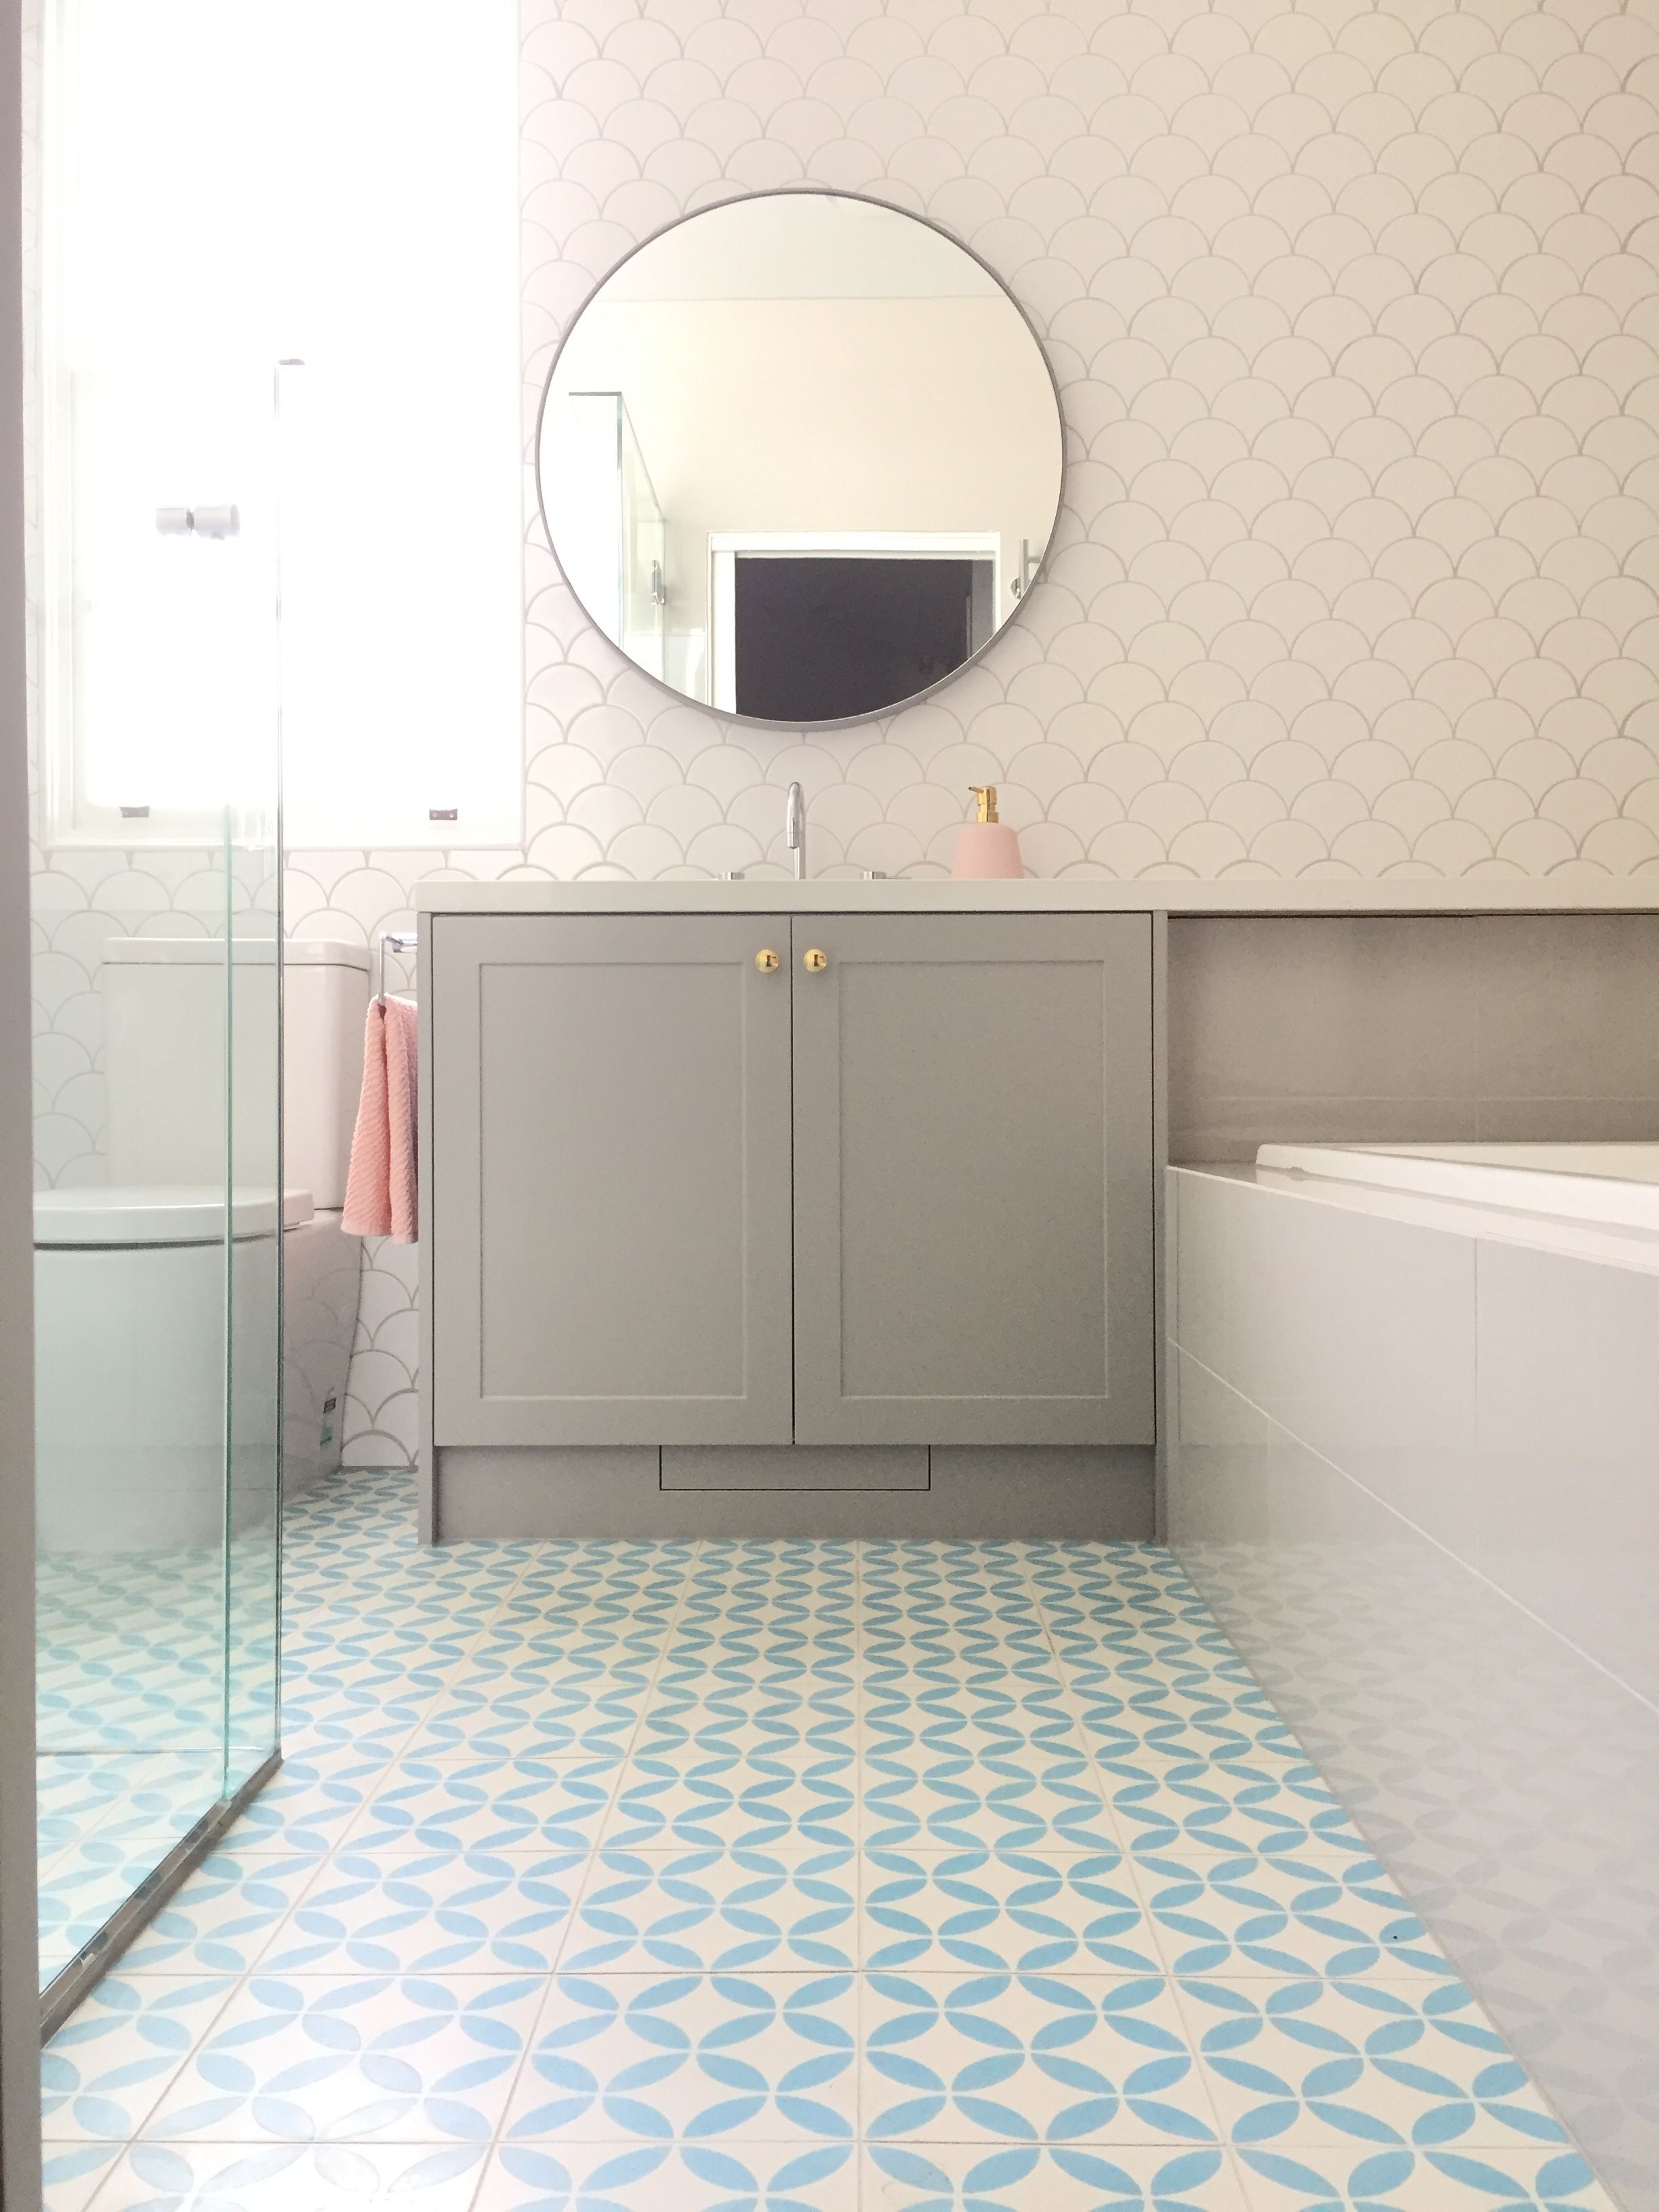 Fun Kids Bathroom With Fish Scale Tiles And Blue Patterned